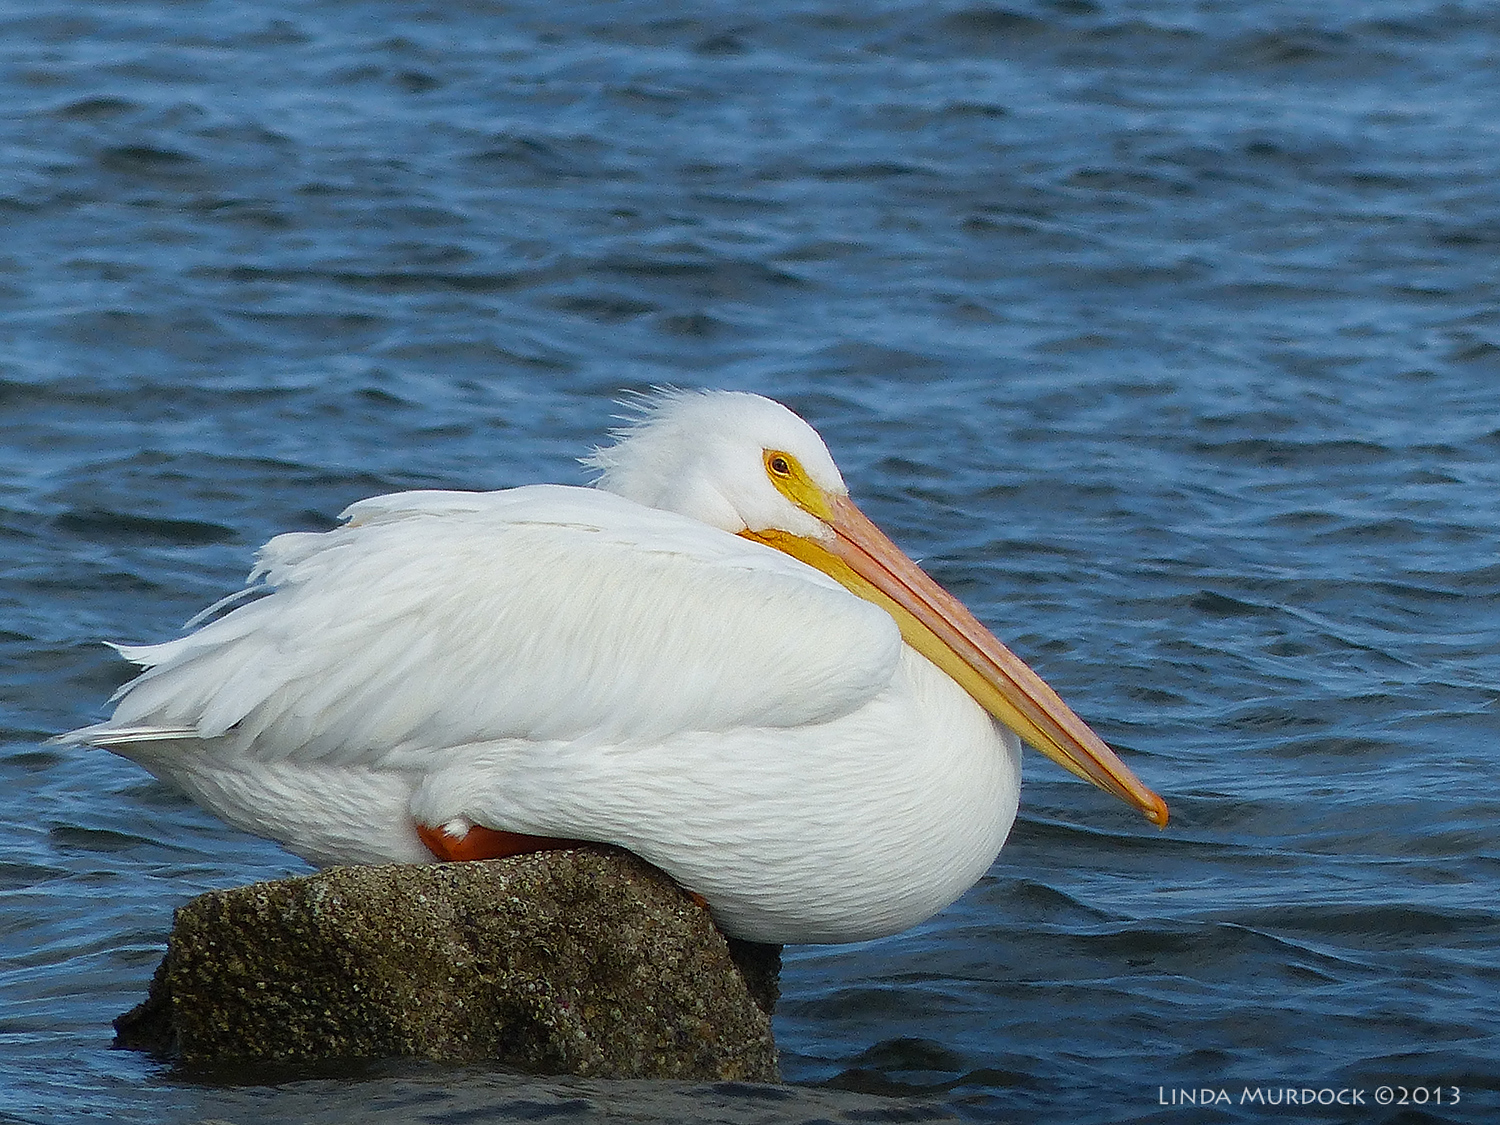 White Pelican as a lump    Panasonic Lumix FZ200 ISO 100 1/1600 at f/4.0, focal length 1200mm. Cropped for composition